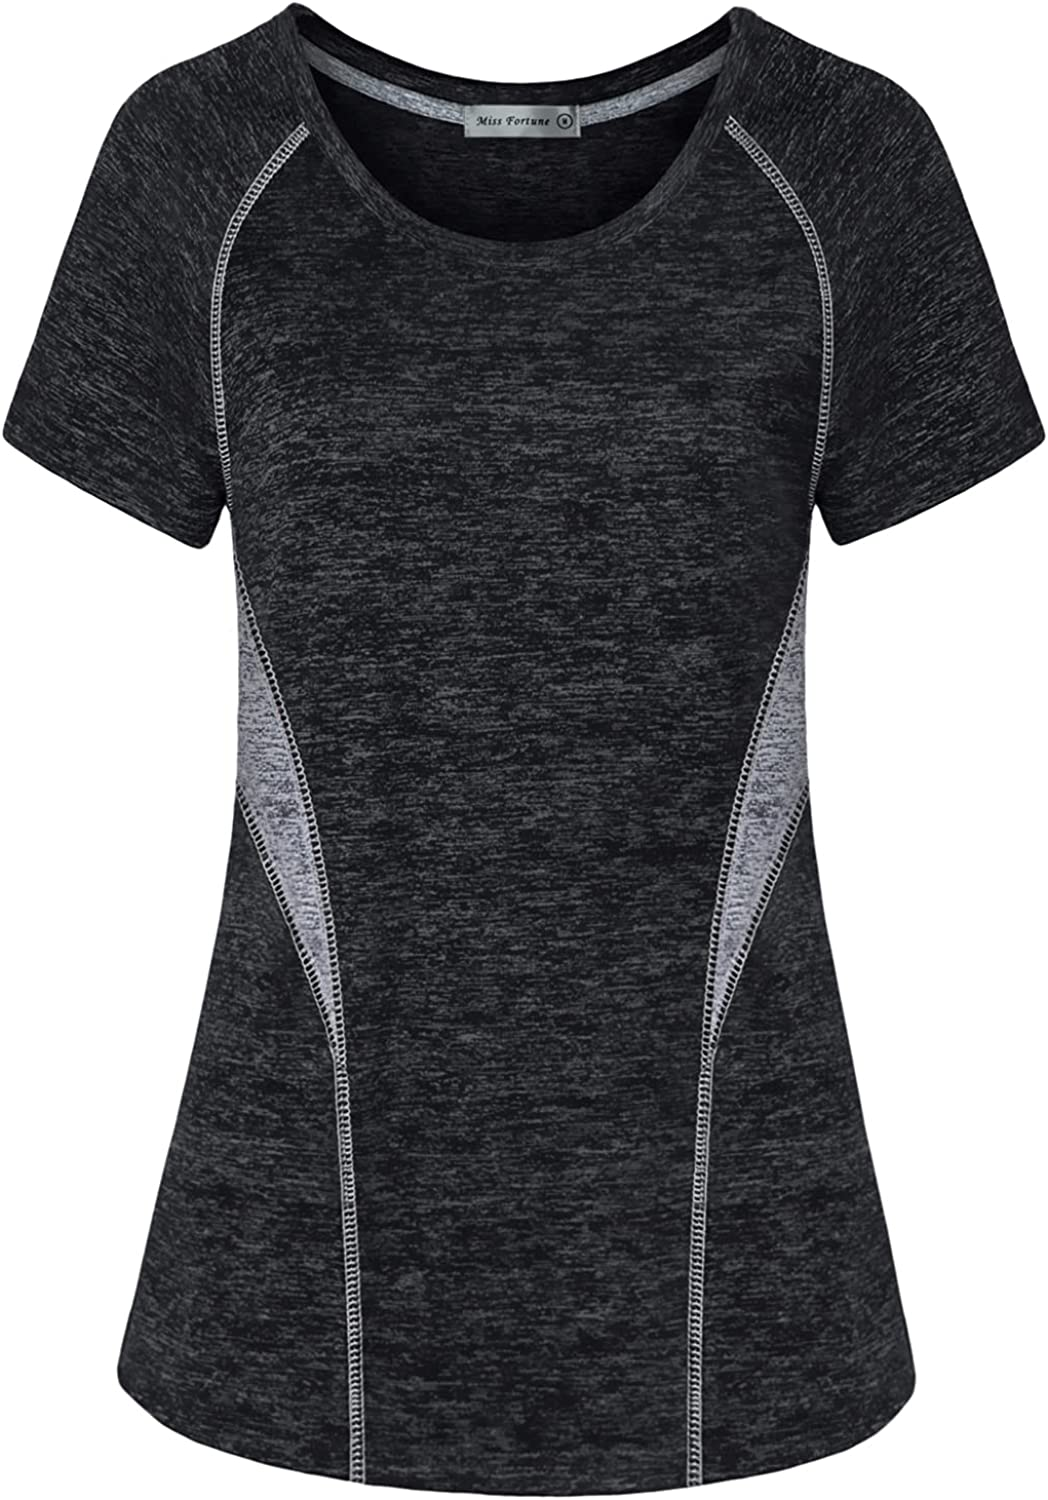 MISS Genuine FORTUNE Womens Active Wear Top Yoga Exercise Cash special price Workout Shirt